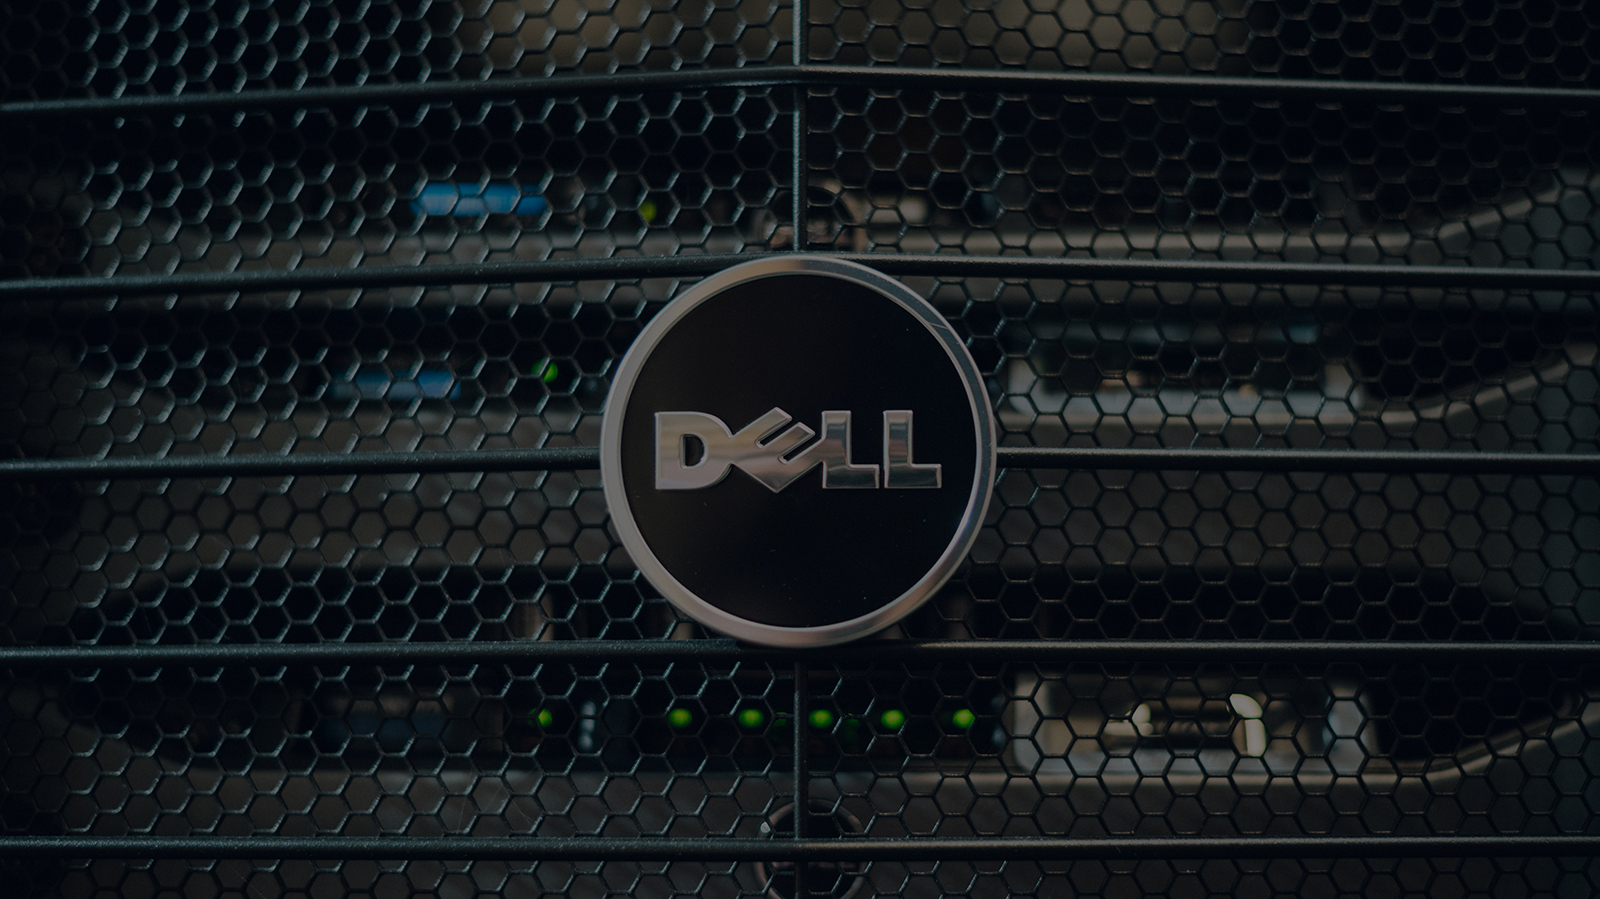 Dell Flash Storage